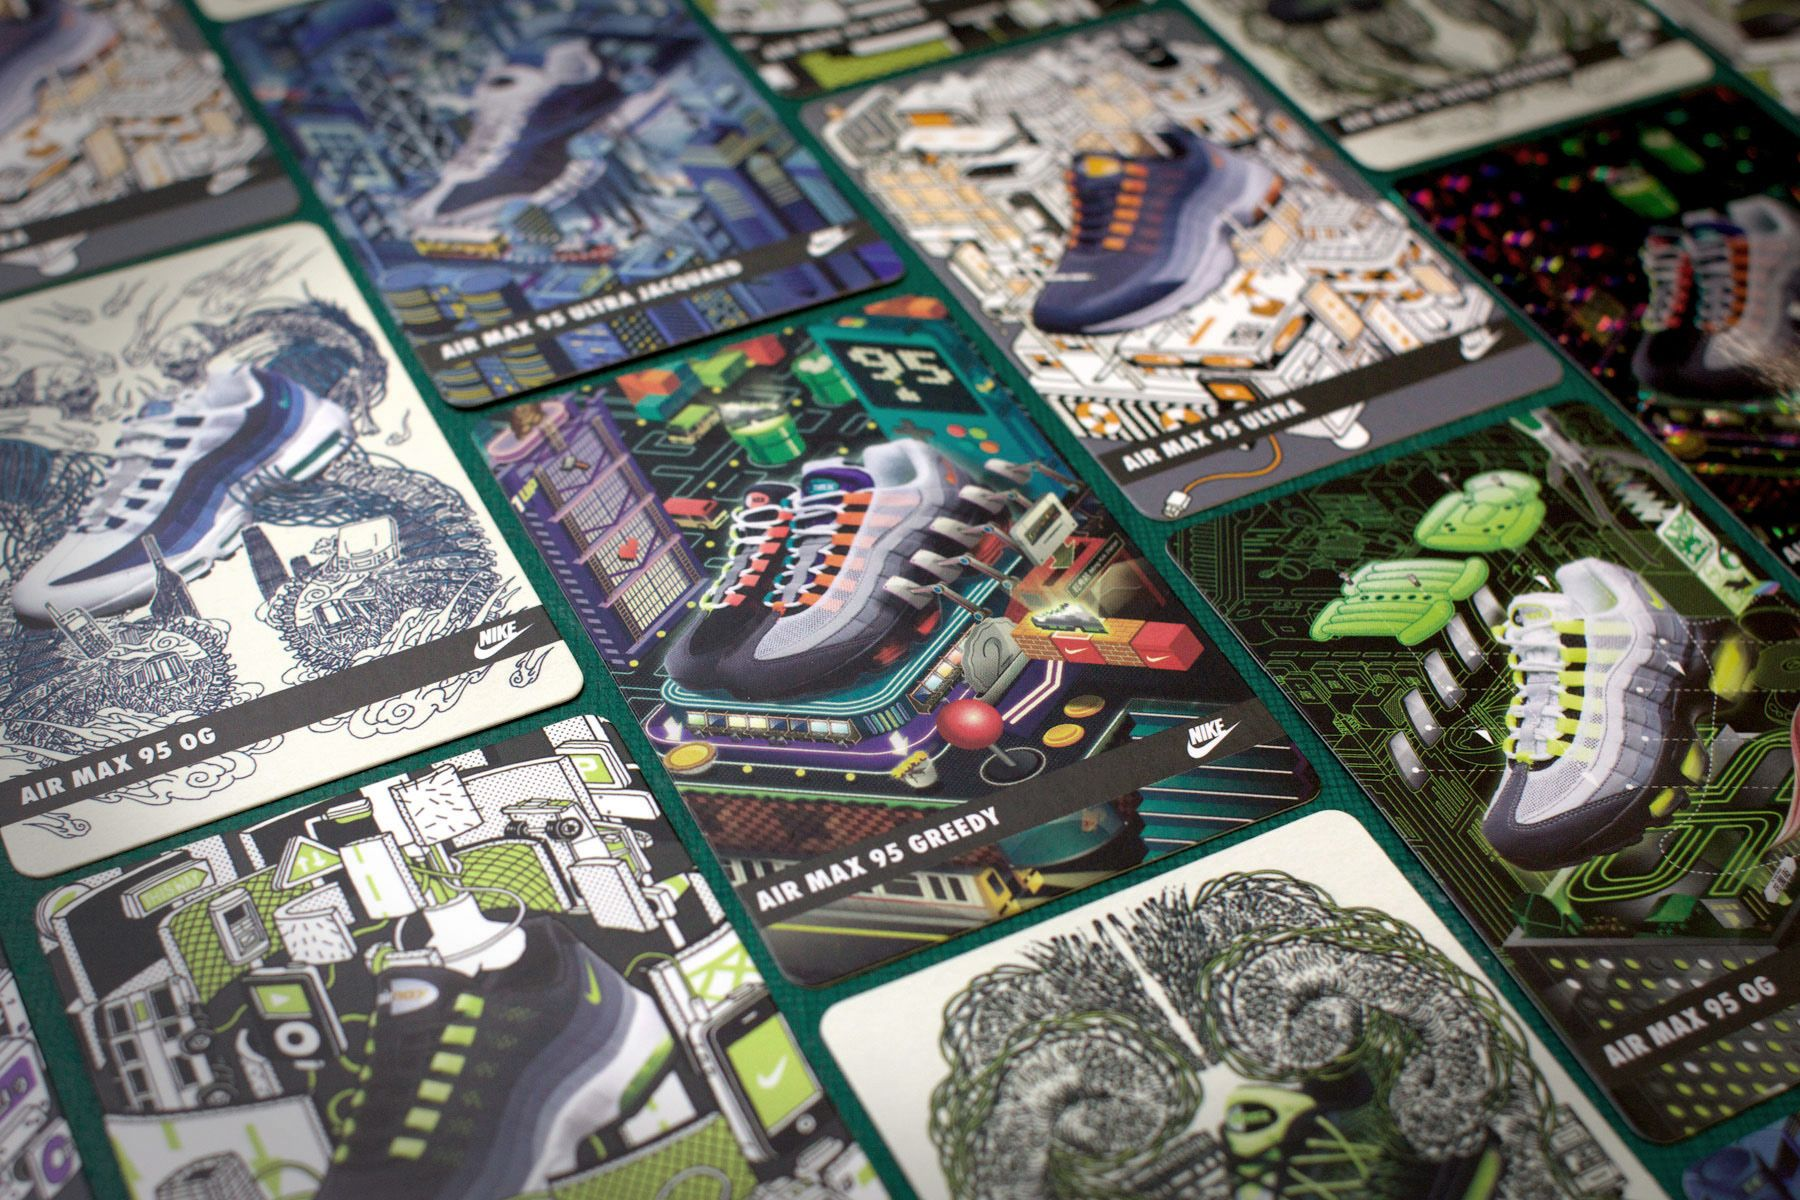 Nike Air Max 95 Collectable Cards. Get them now in Nike Store Causeway Bay or KicksLounge in Tsim Sha Tsui in August 2015! #nike #airmax #airmax95 #sneakerart #shoes #illustration